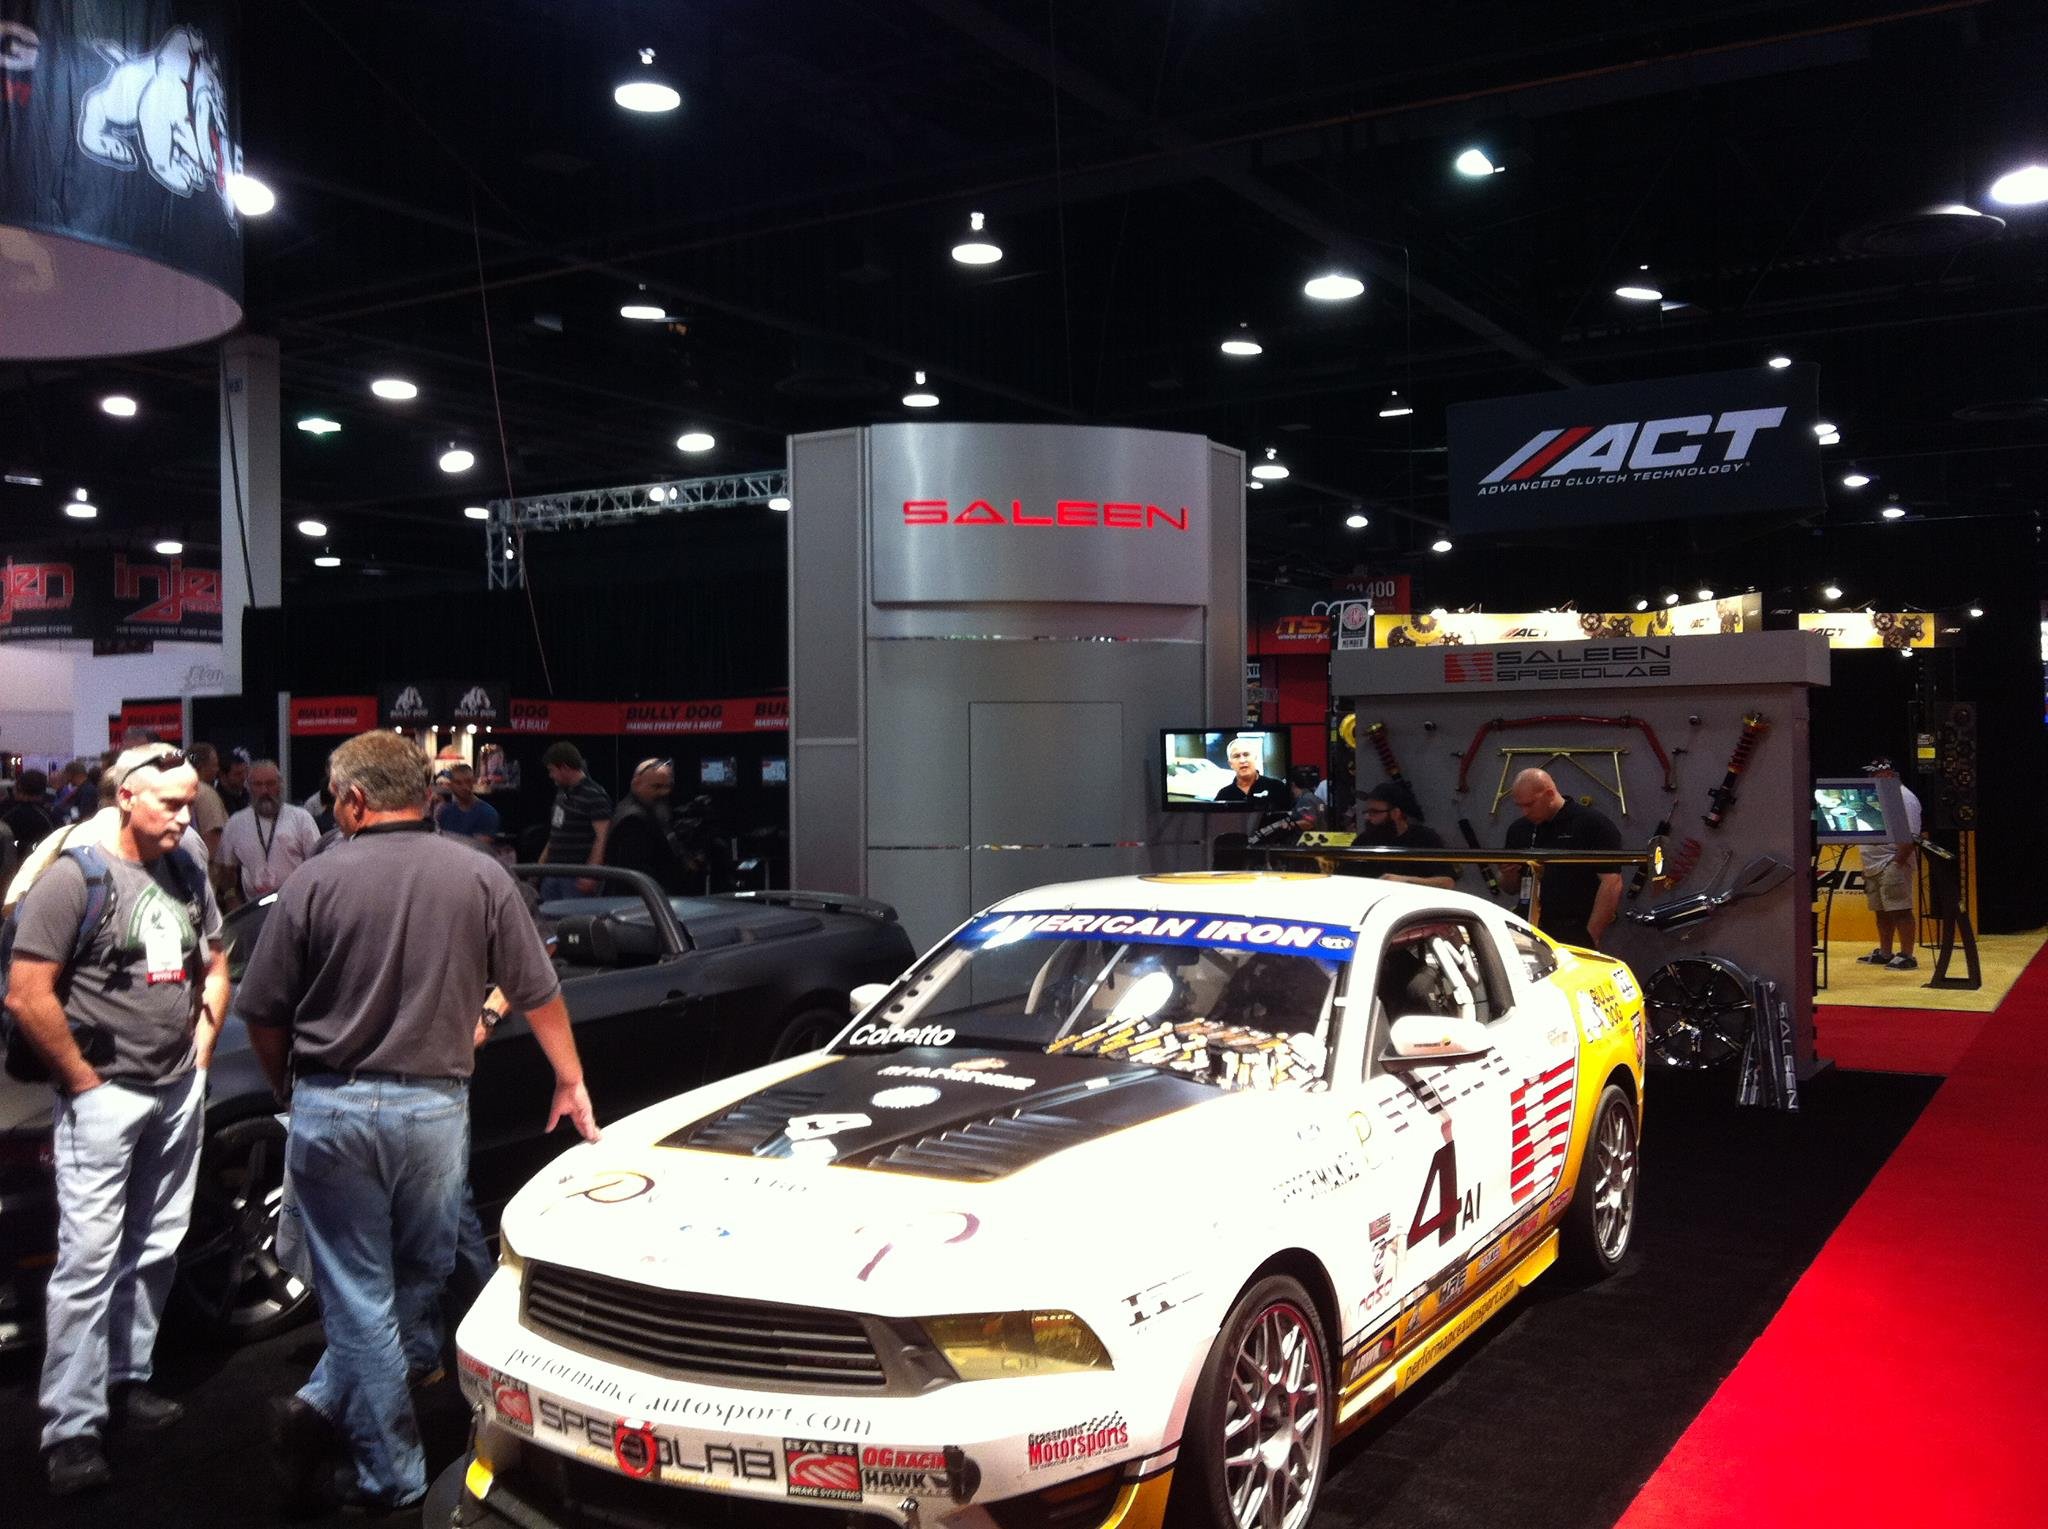 SEMA show is open!! Busy busy. Come visit our booth if you are at the show. Booth 21248